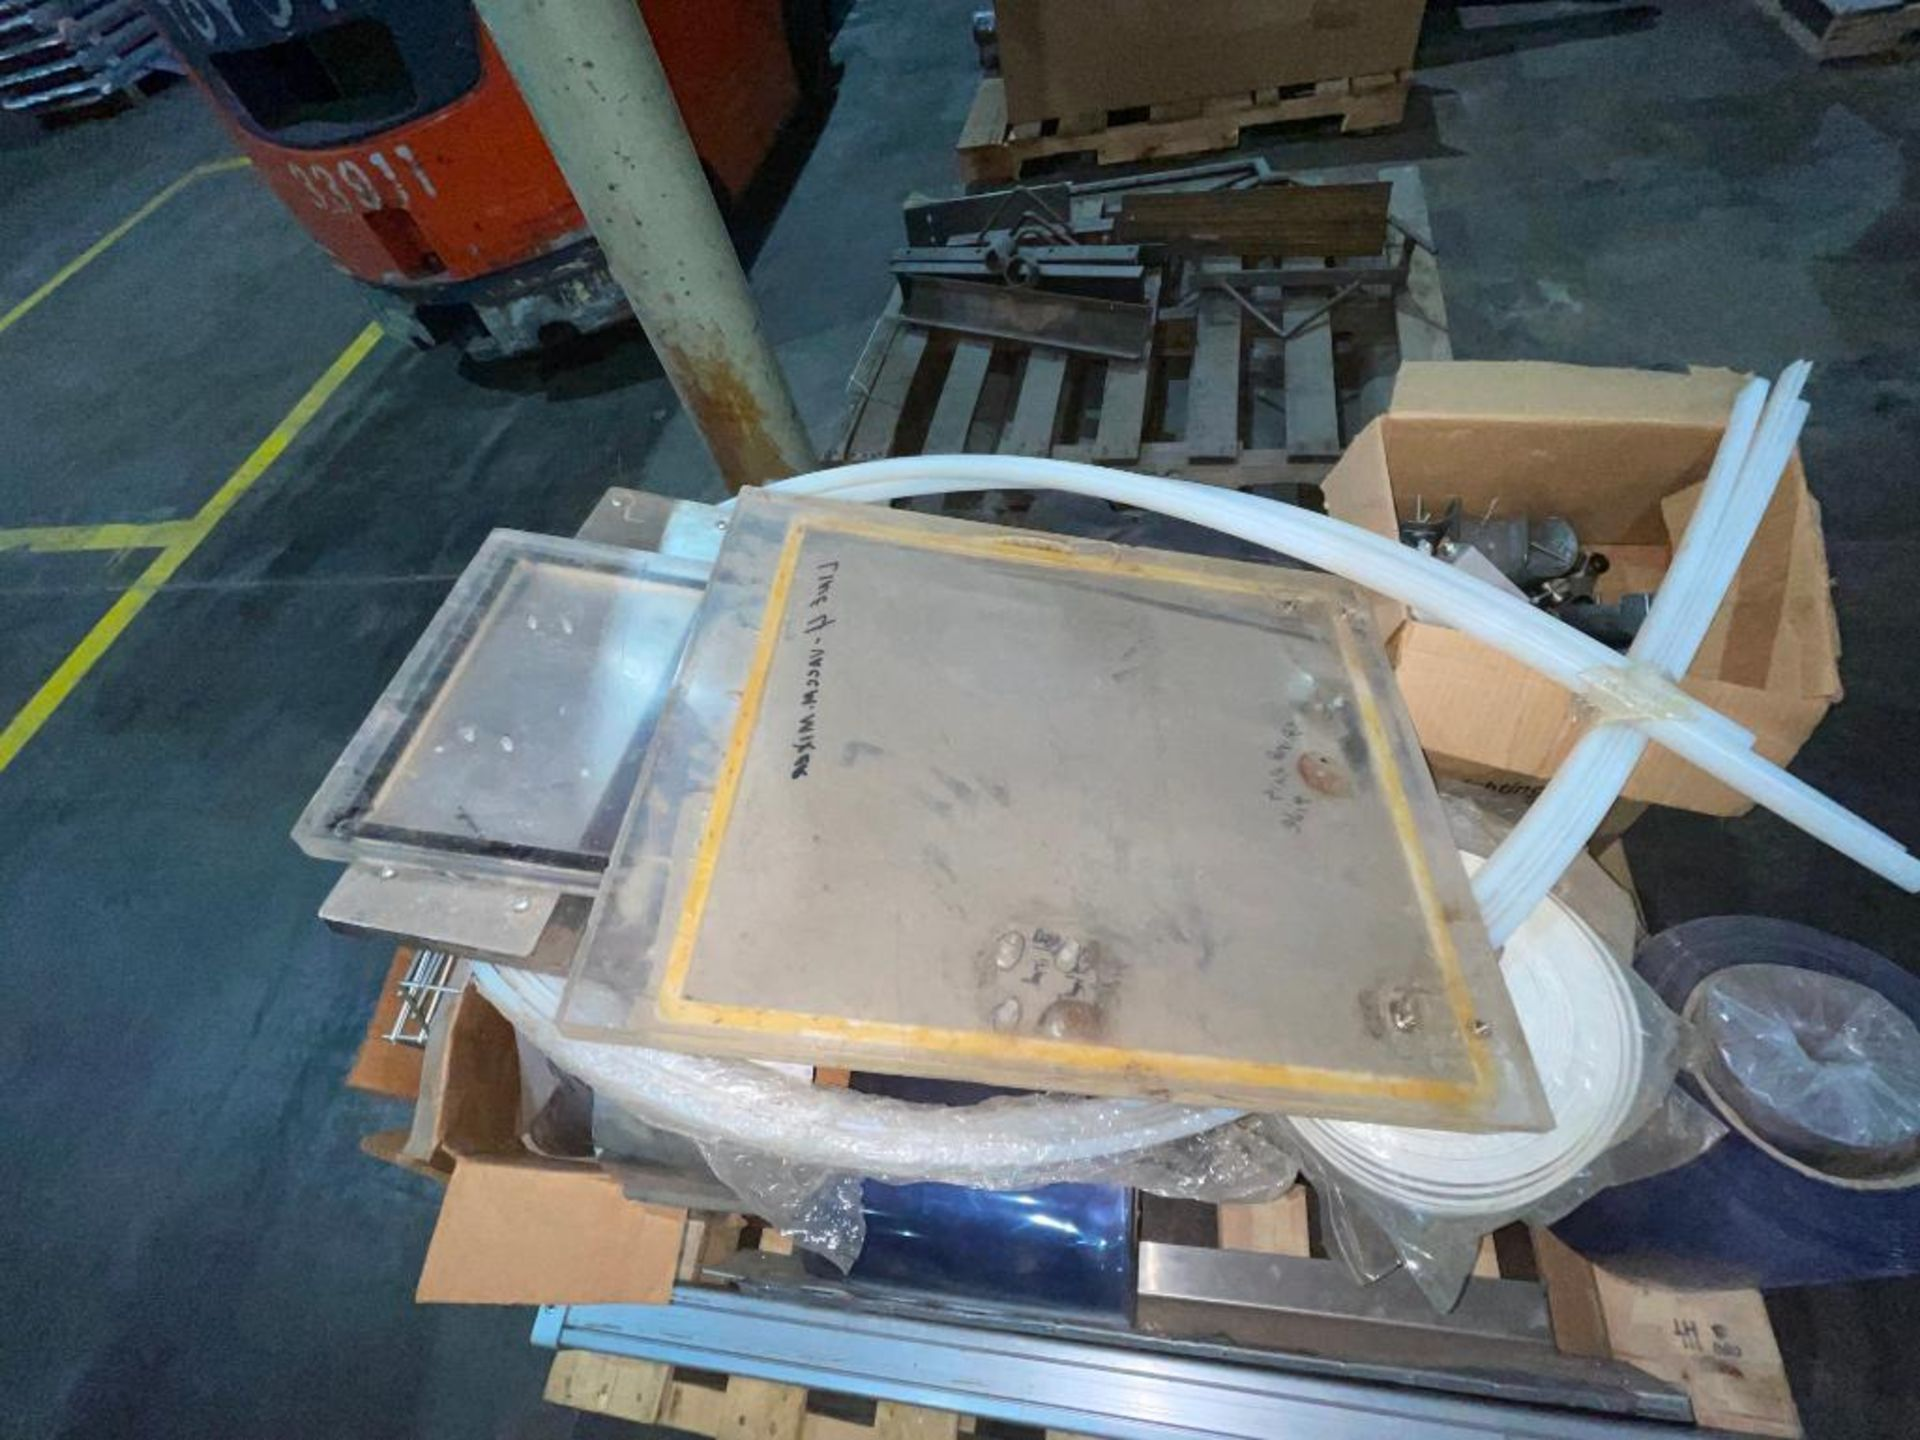 pallet of plastic strip curtain - Image 7 of 7